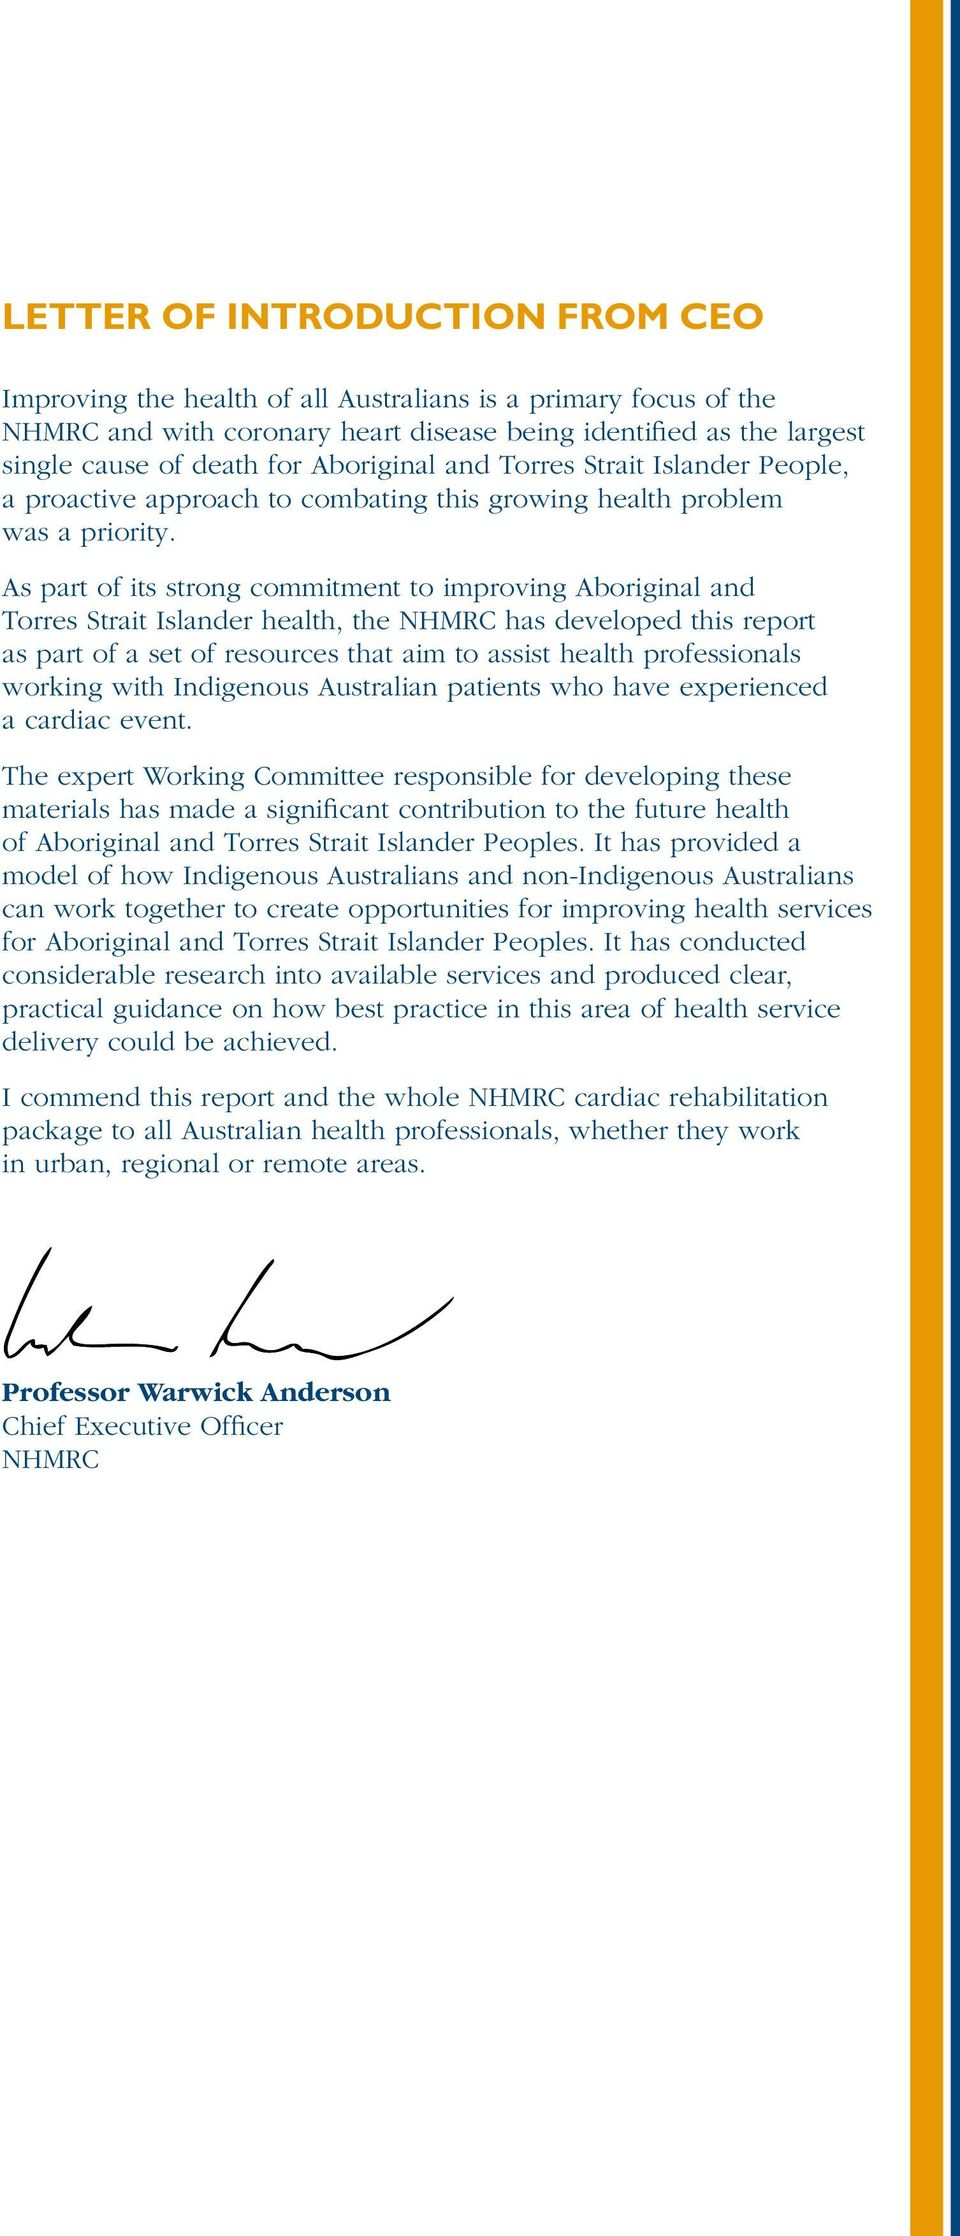 As part of its strong commitment to improing Aboriginal and Torres Strait Islander health, the NHMRC has deeloped this report as part of a set of resources that aim to assist health professionals